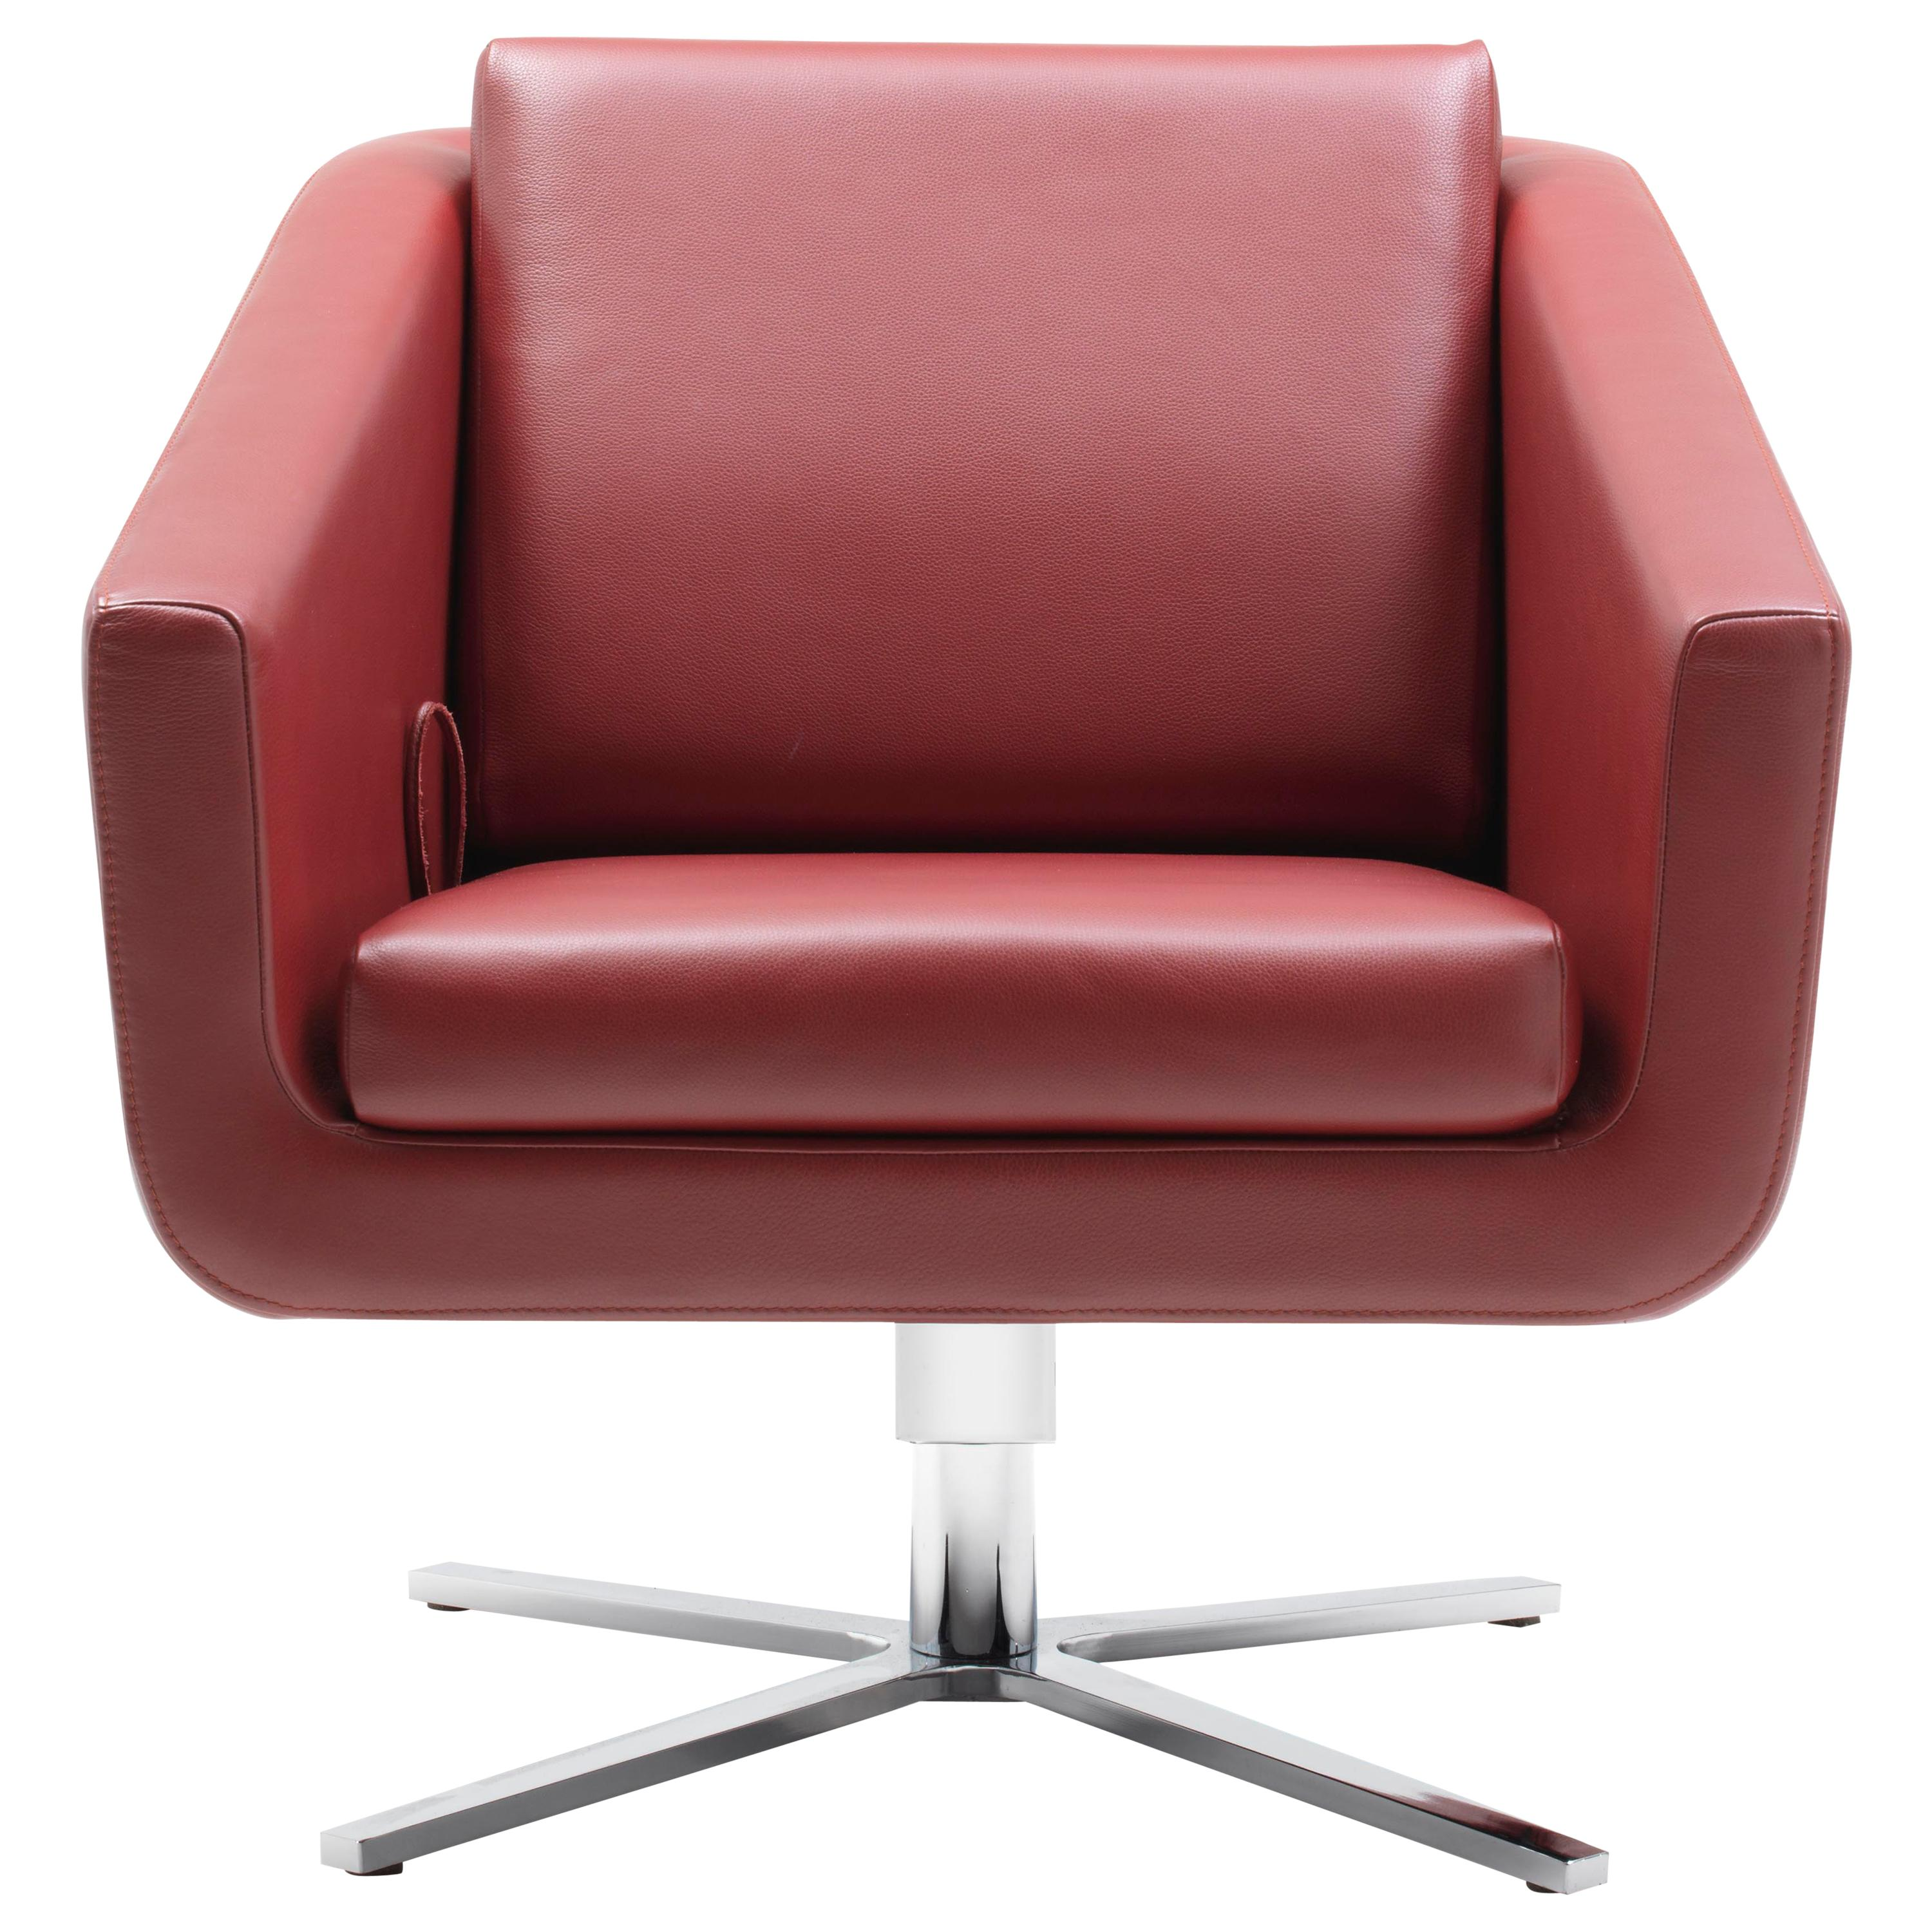 Pavo Adjustable Leather Armchair by FSM